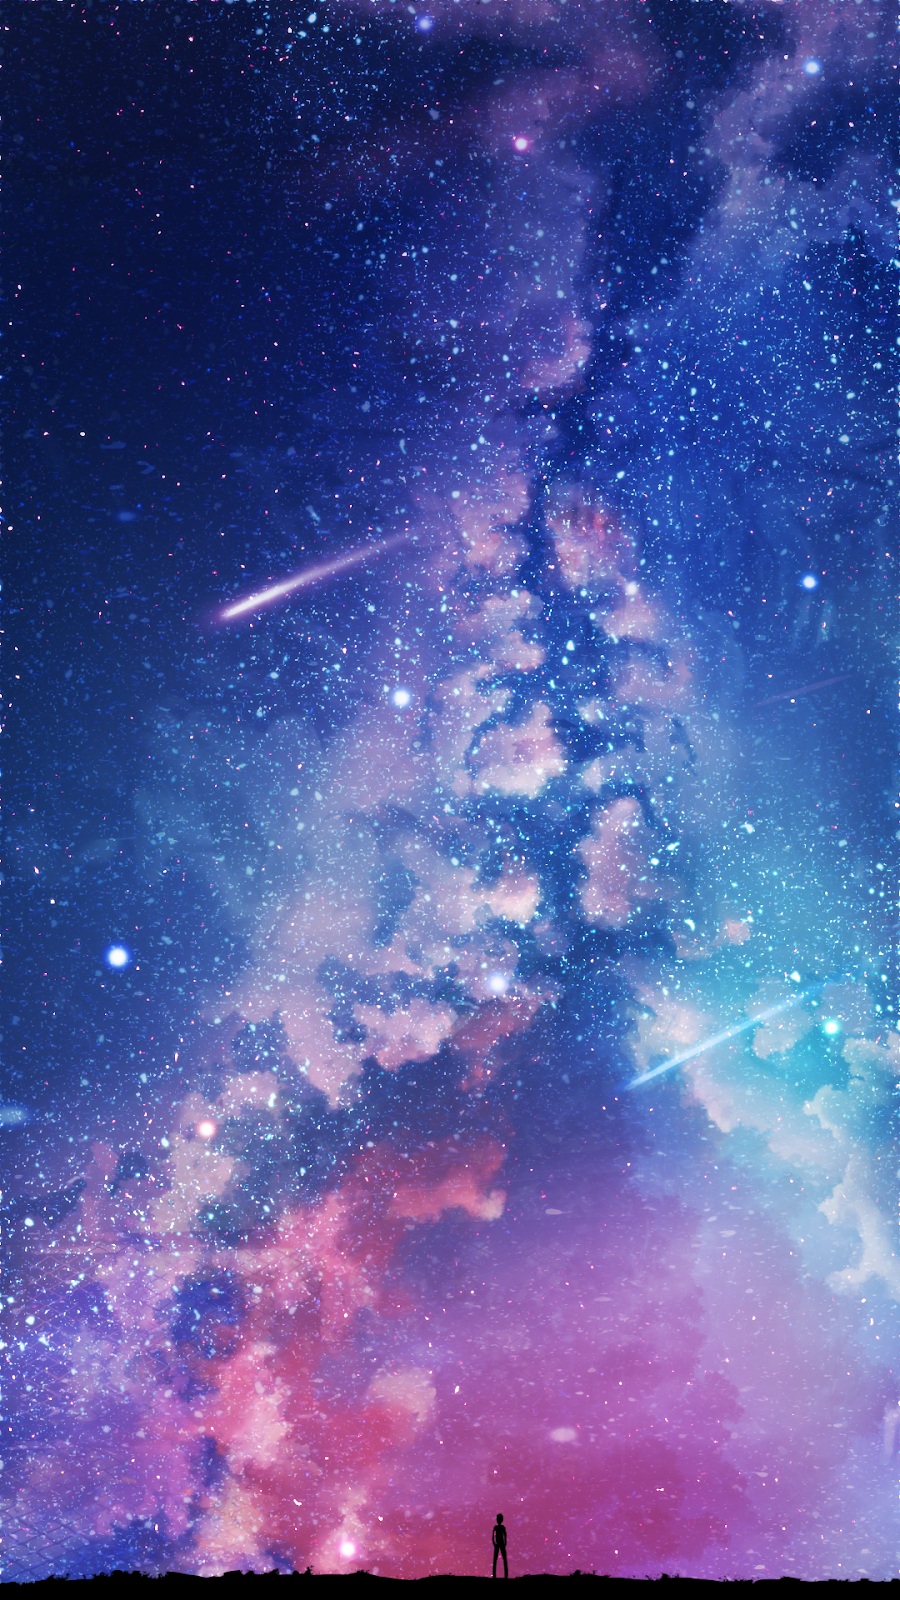 In The Starry Night Wallpaper Iphone Android Background Followme Galaxy Wallpaper Anime Scenery Wallpaper Night Sky Wallpaper